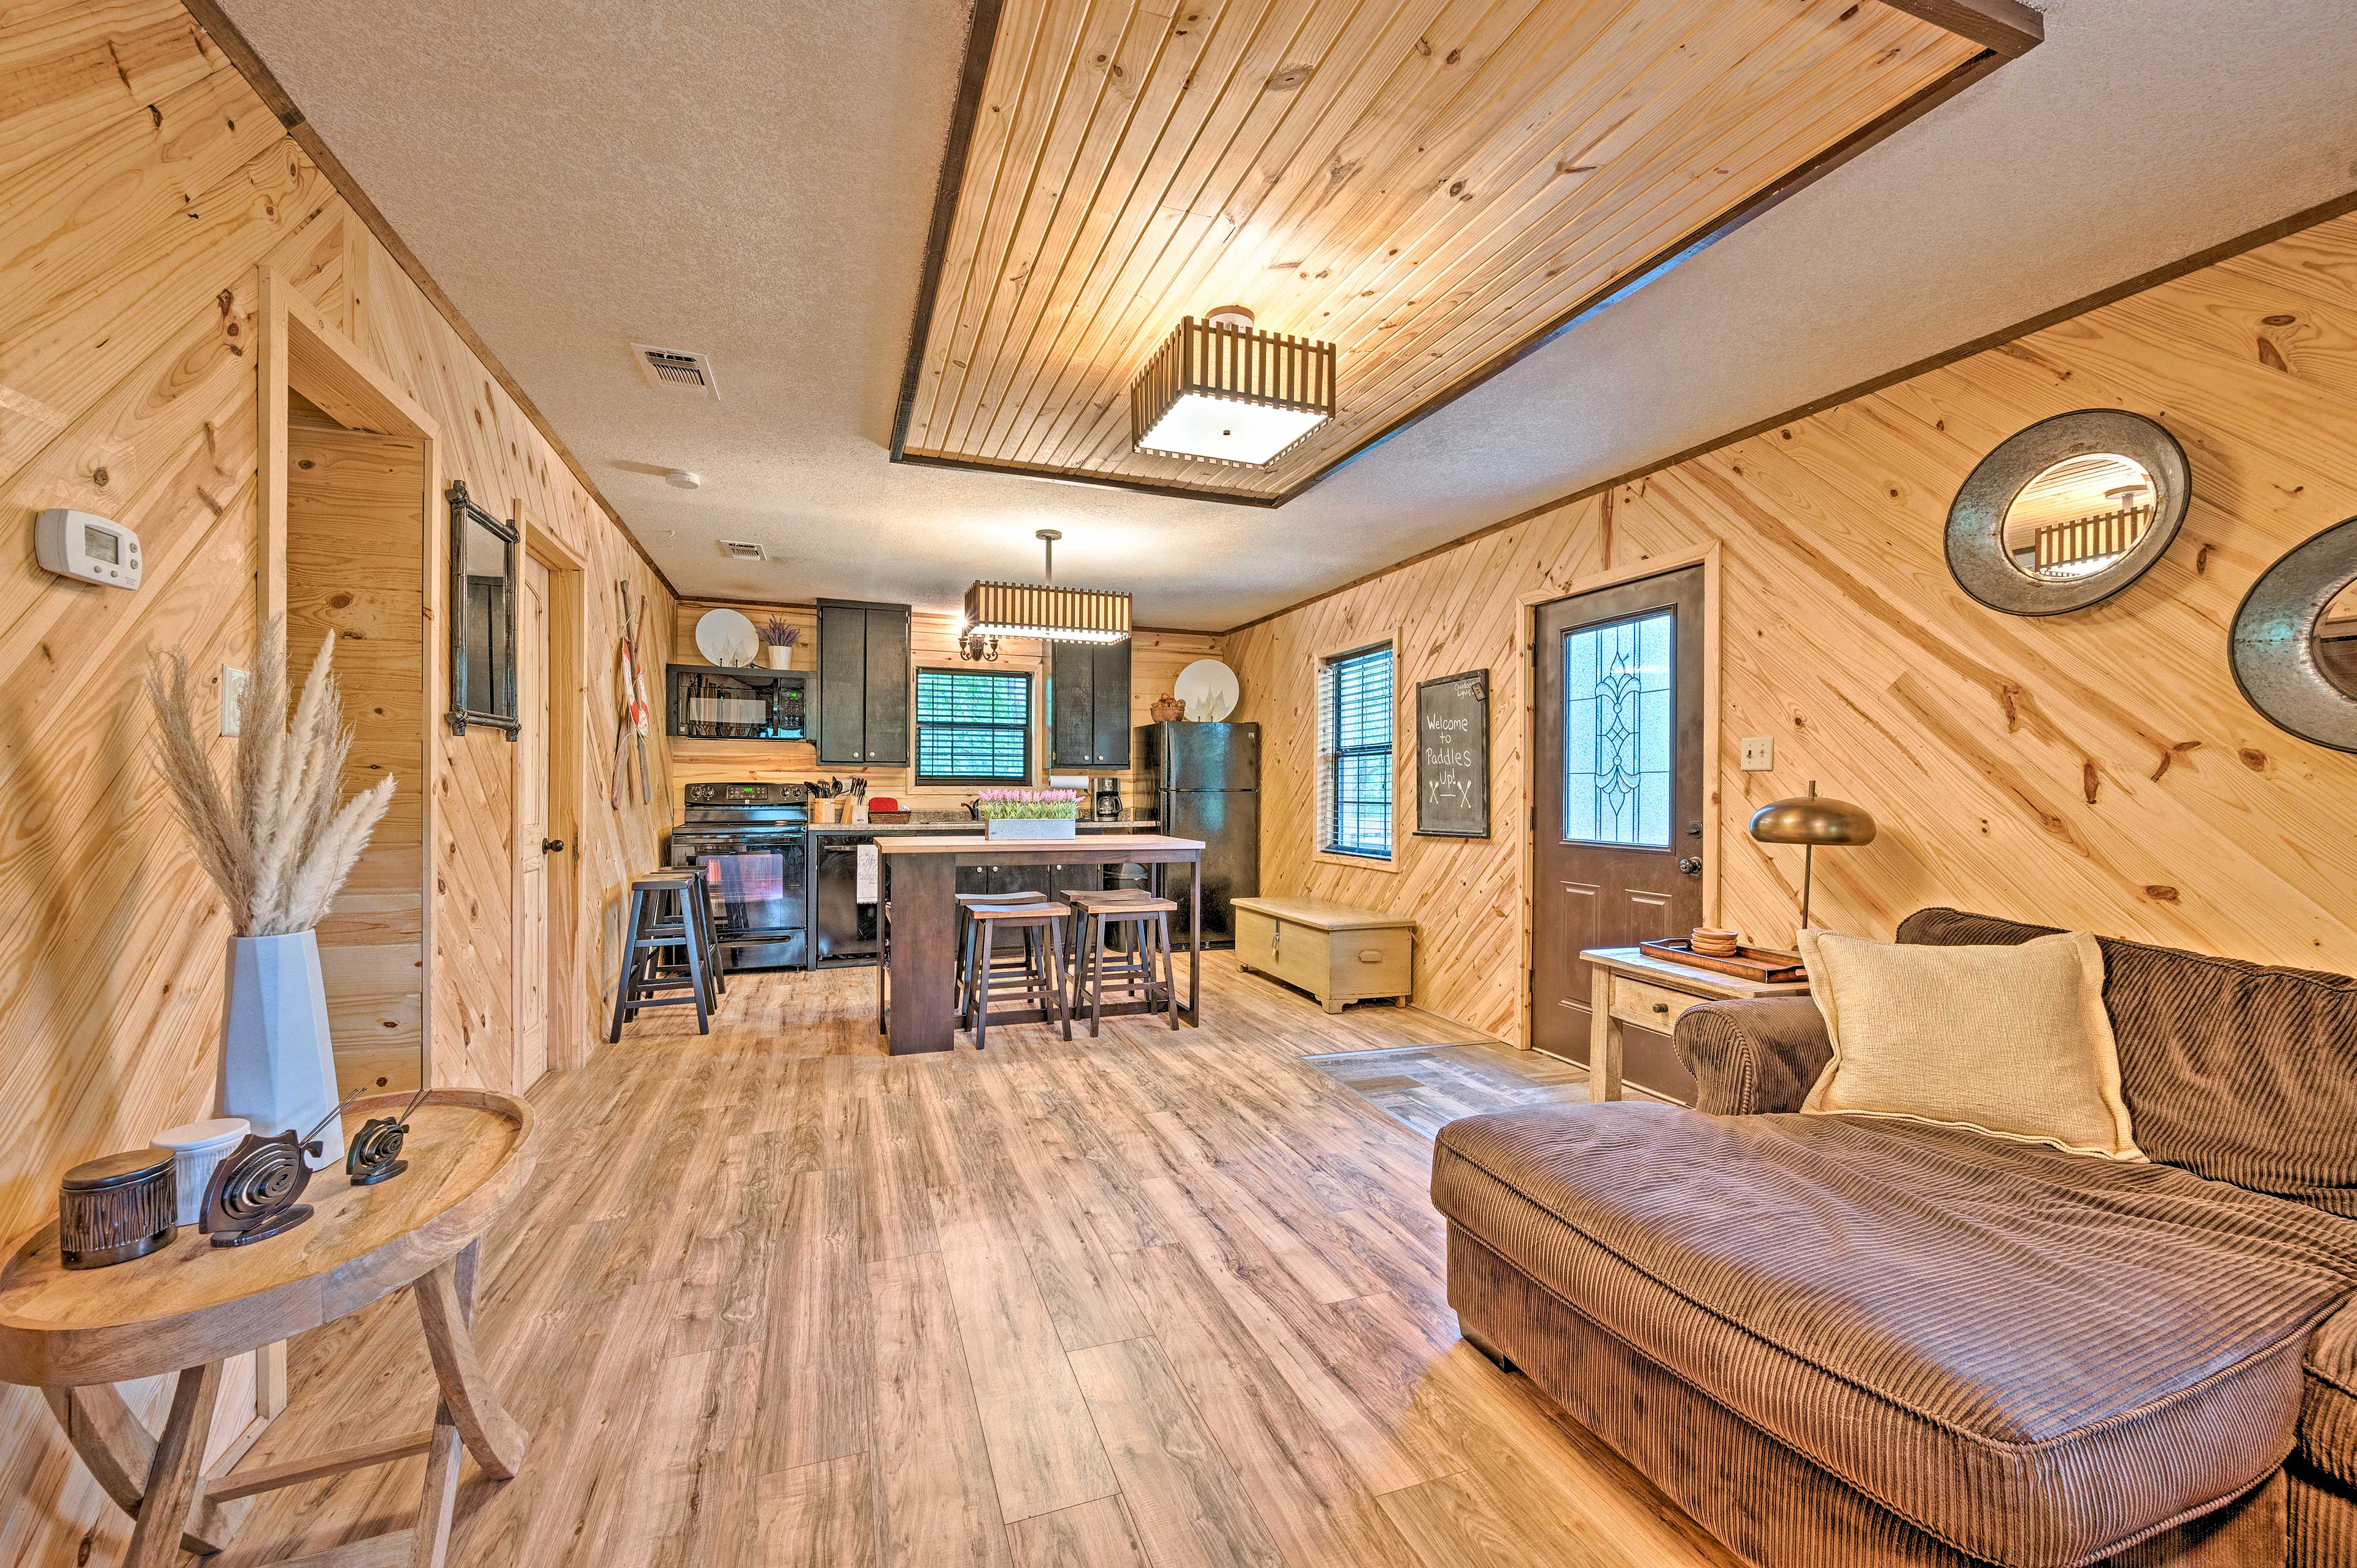 The home was recently remodeled and upgraded with everything you need.